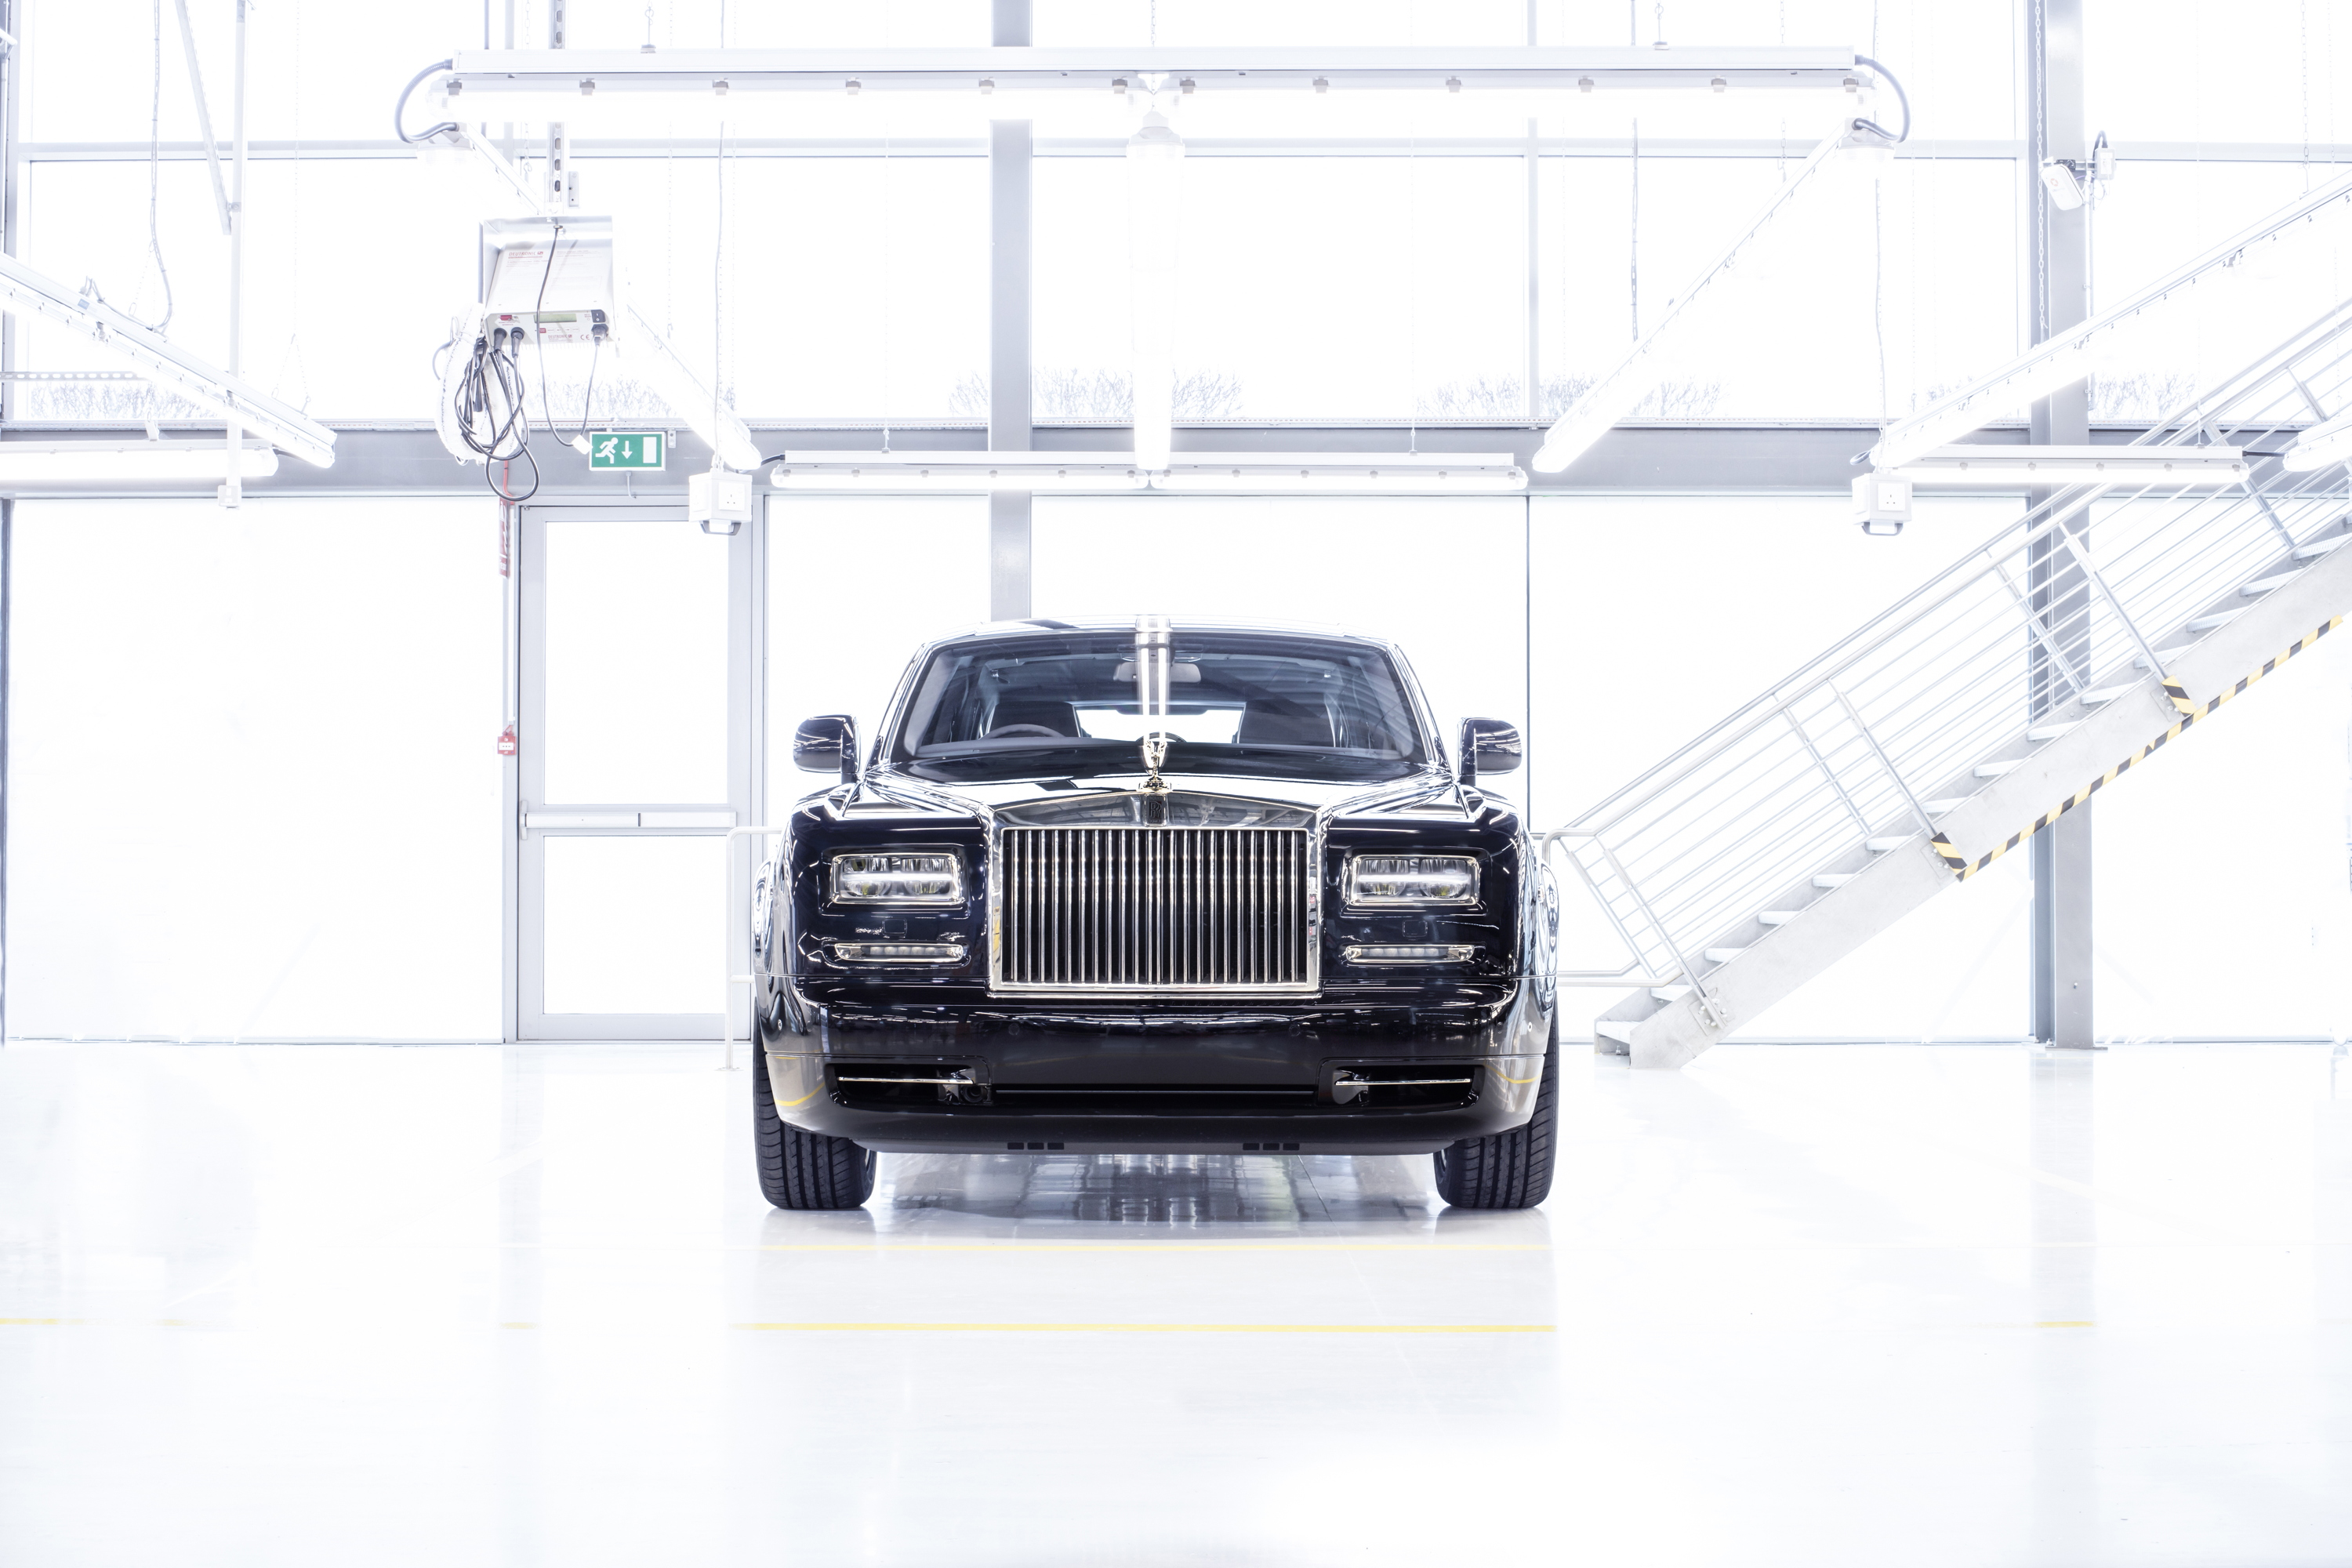 Final Rolls-Royce Phantom VII head on